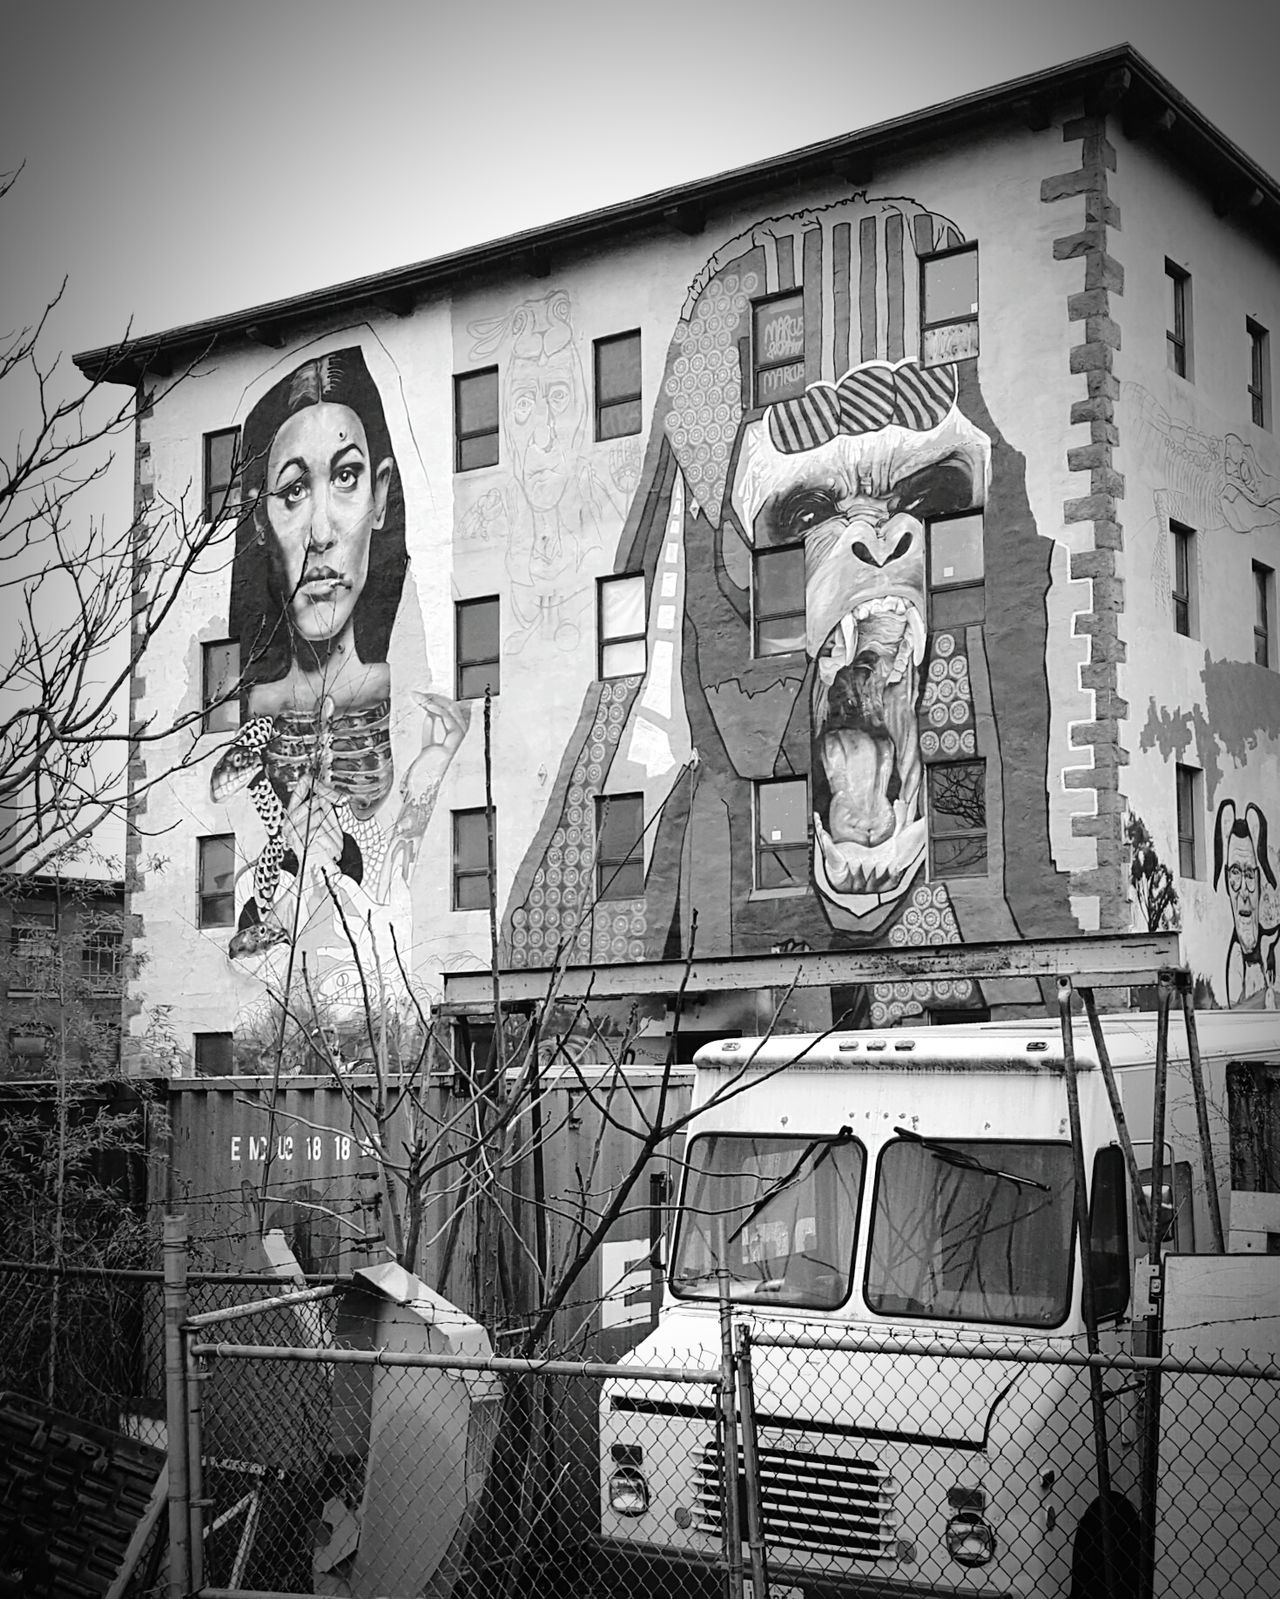 Check This Out Taking Photos Abandoned Abandoned & Derelict Abandoned_junkies Painting On The Walls Image Of Women & King Kong Graffiti Art Graffiti Wall Overcast Silver Lake District Overcast Weather ❤ S6 Mural Art Black And White Edit!Rhode Island